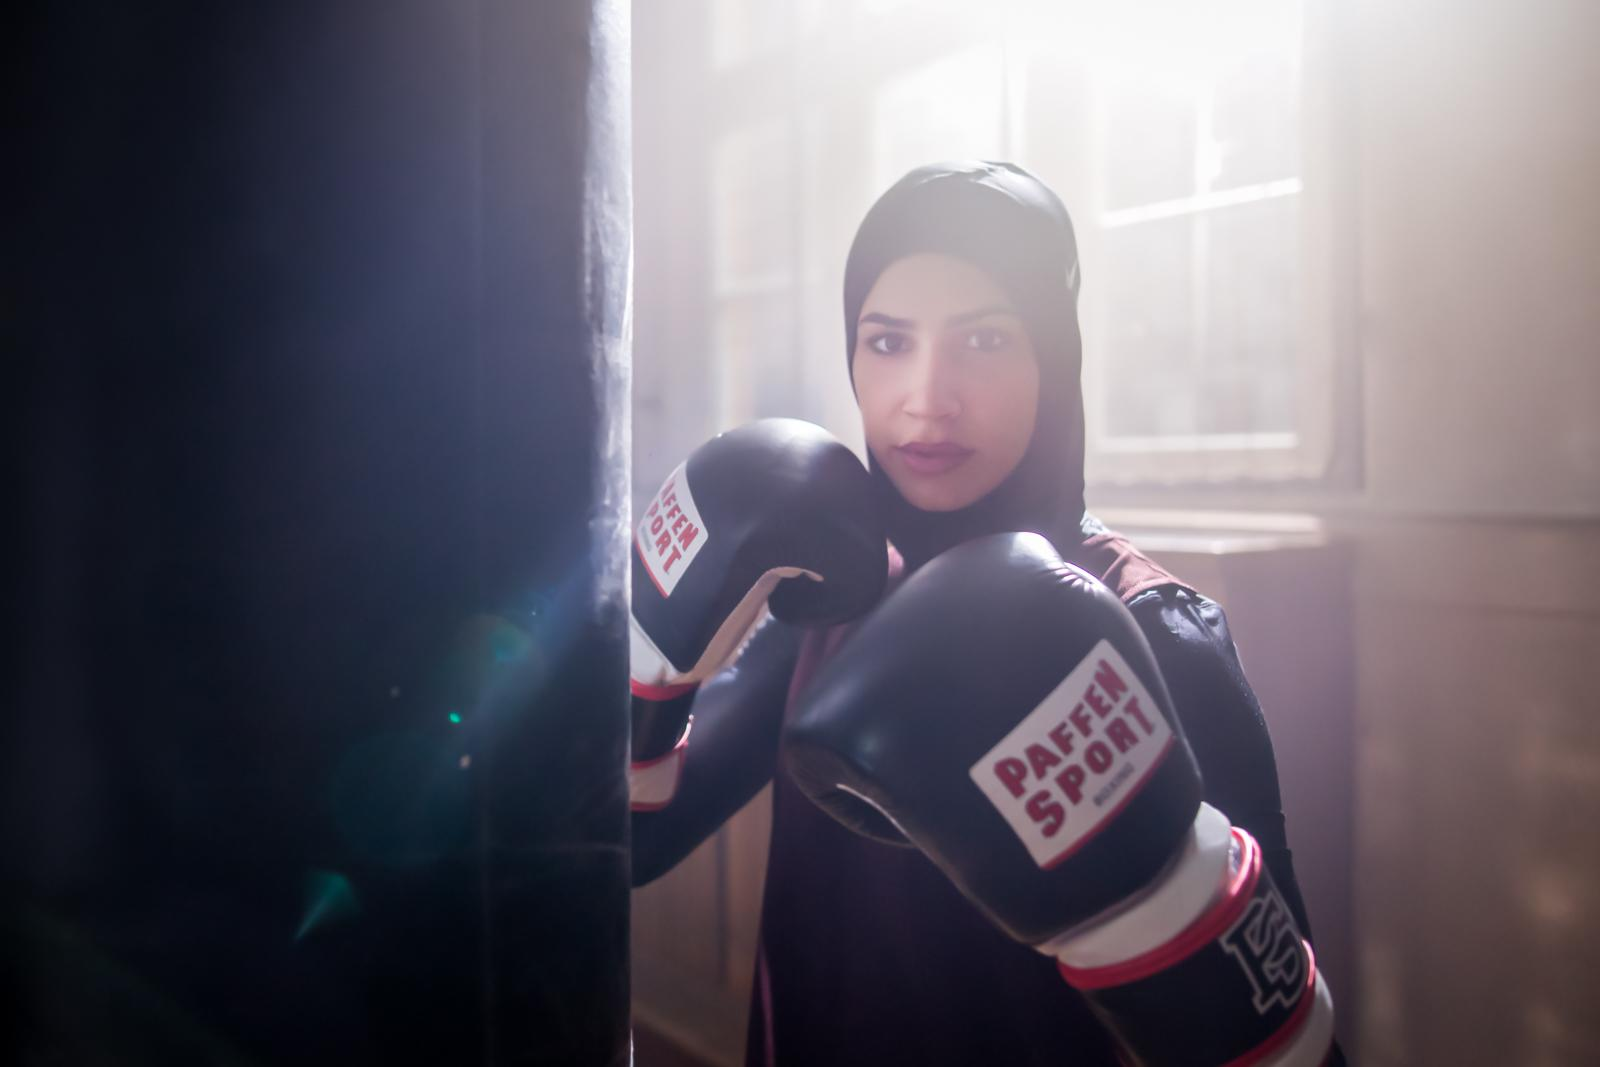 German featherweight boxing champion Zeina Nassar, 21, portrayed at her first boxing gym in Berlin Kreuzberg. Berlin, Germany, November 23, 2018.